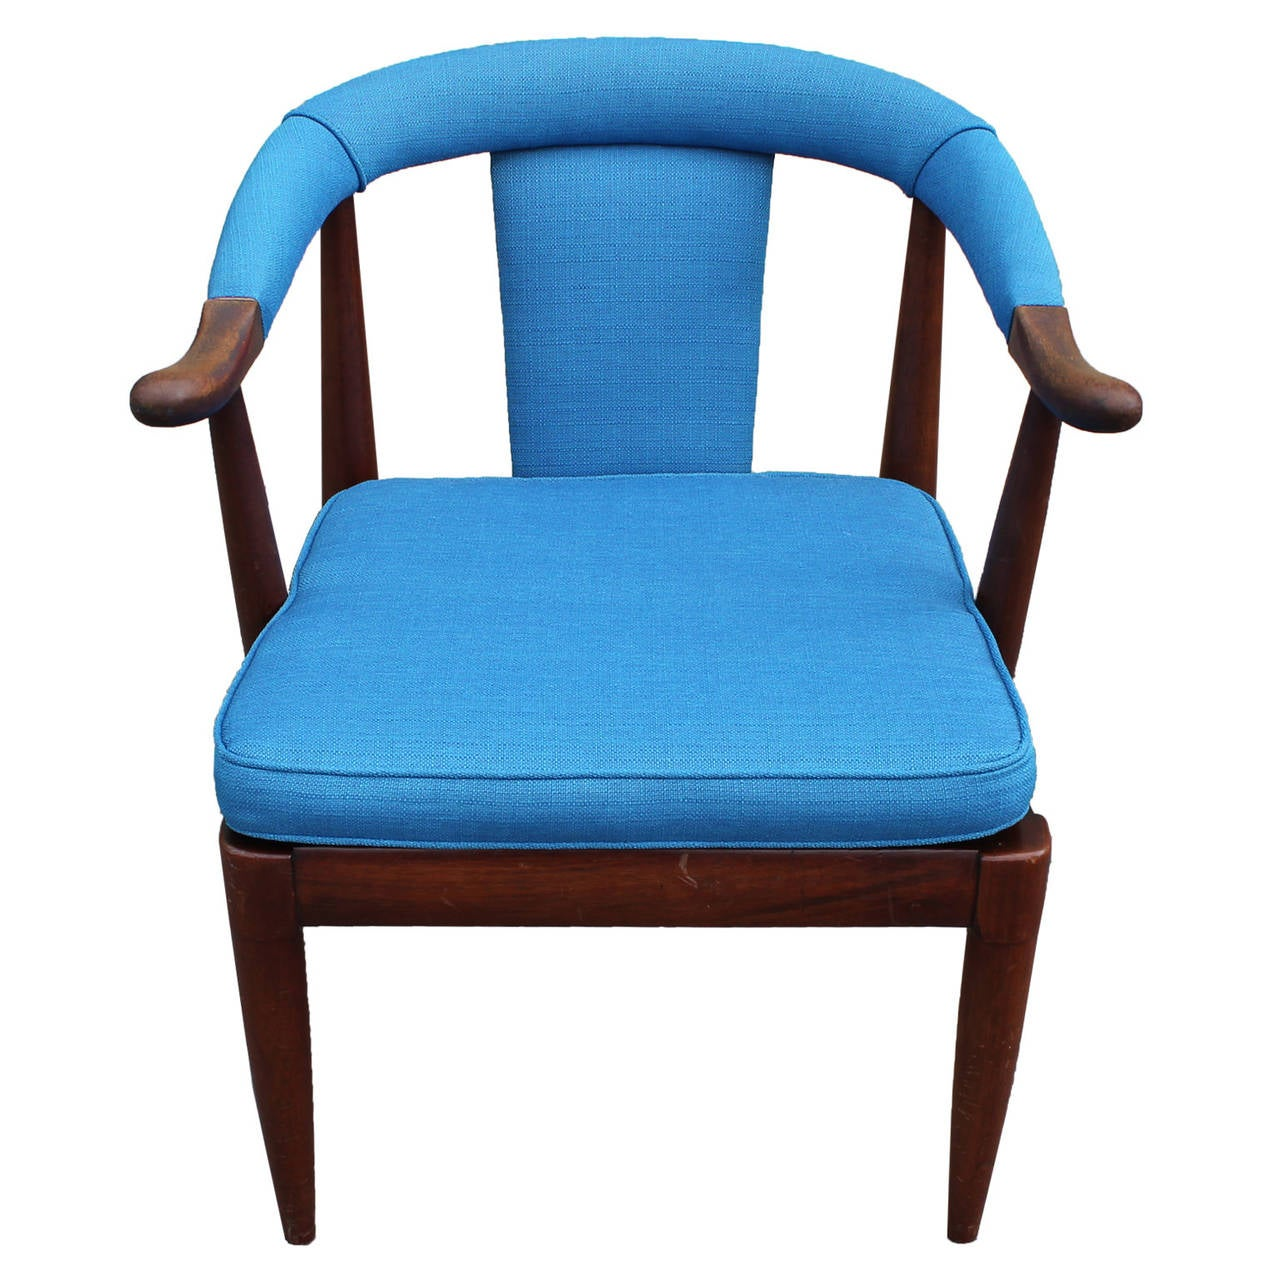 Turquoise horseshoe side chair at 1stdibs